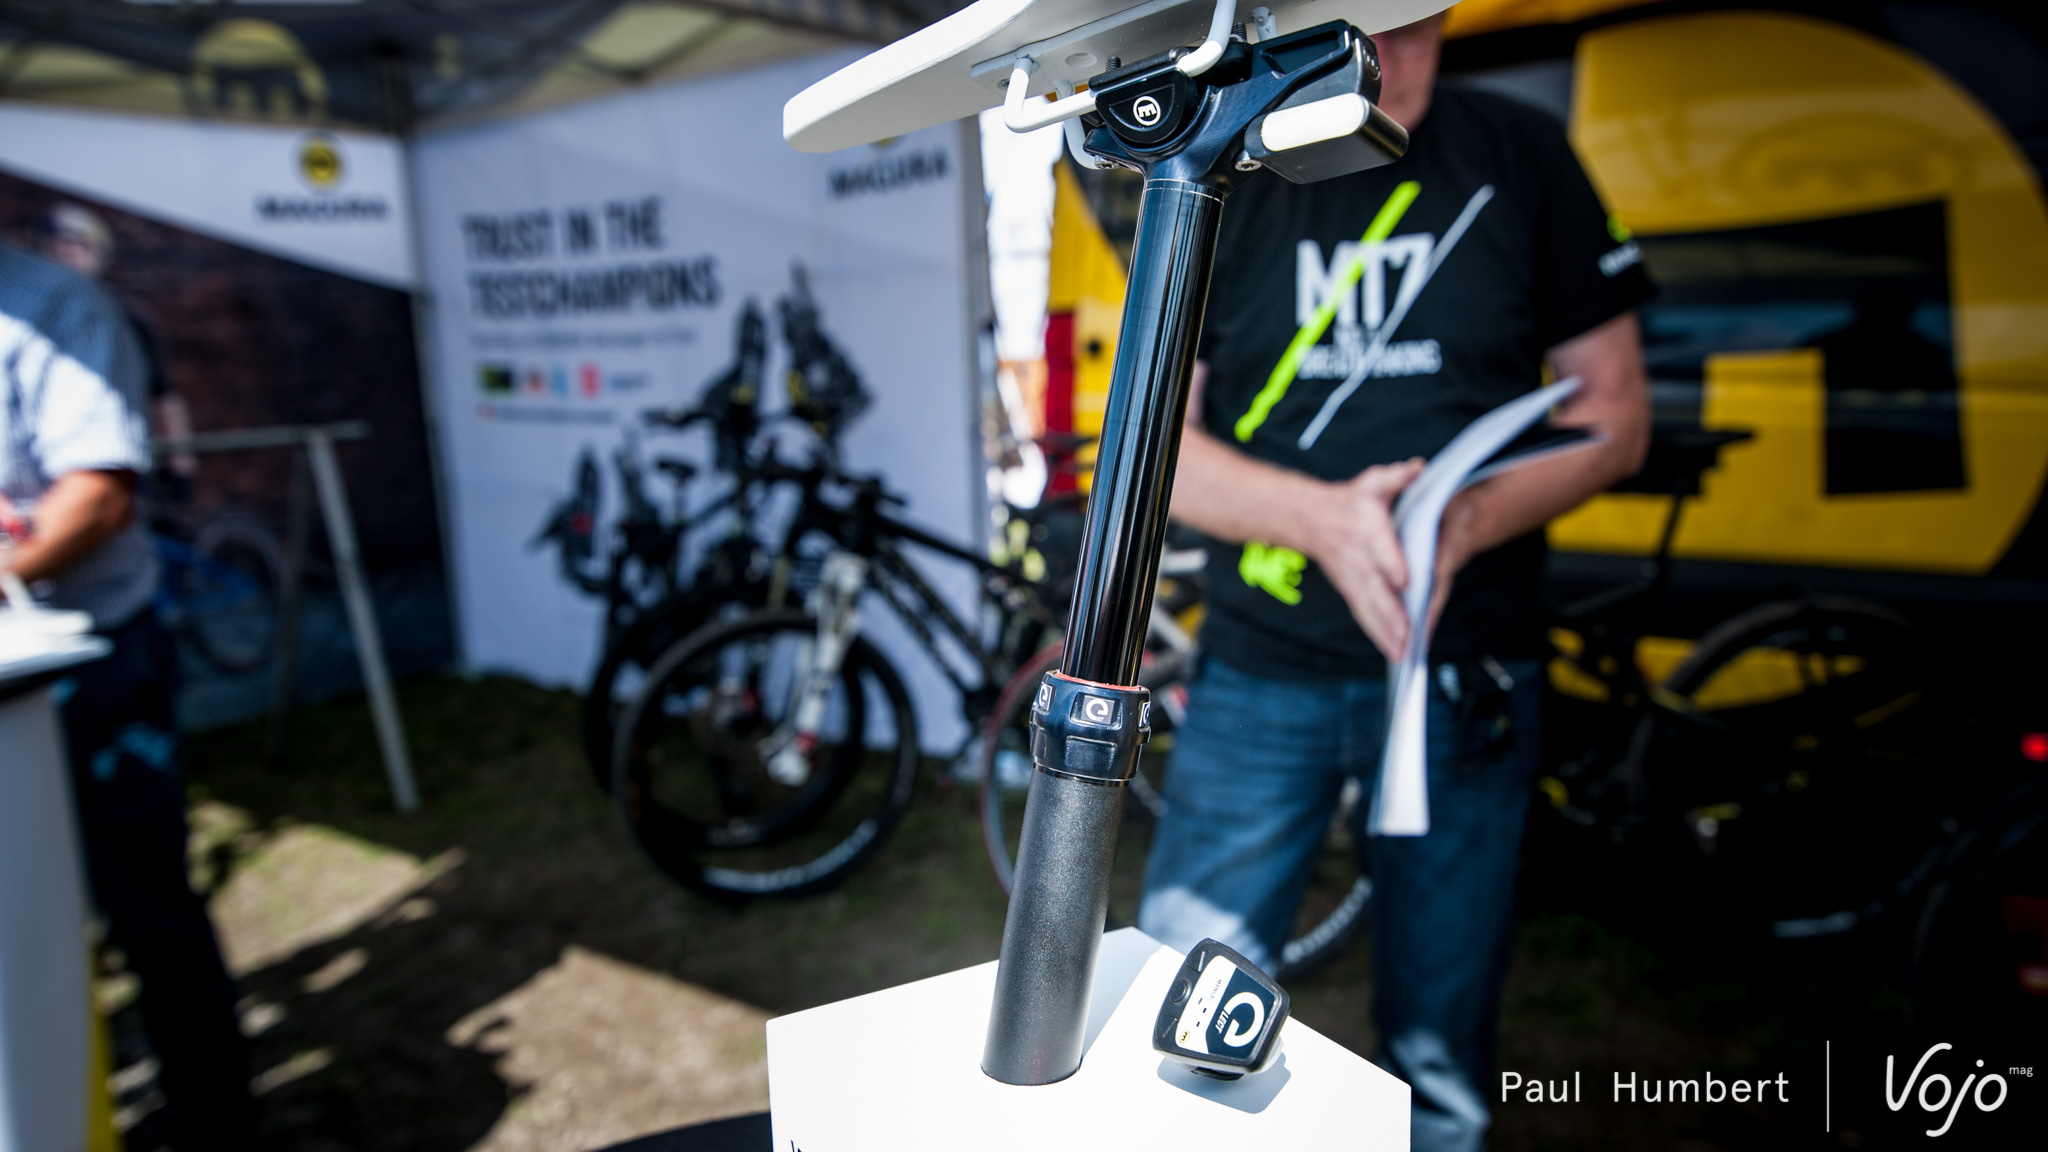 Eurobike-2015-demodays-vojo-paul-humbert - copie